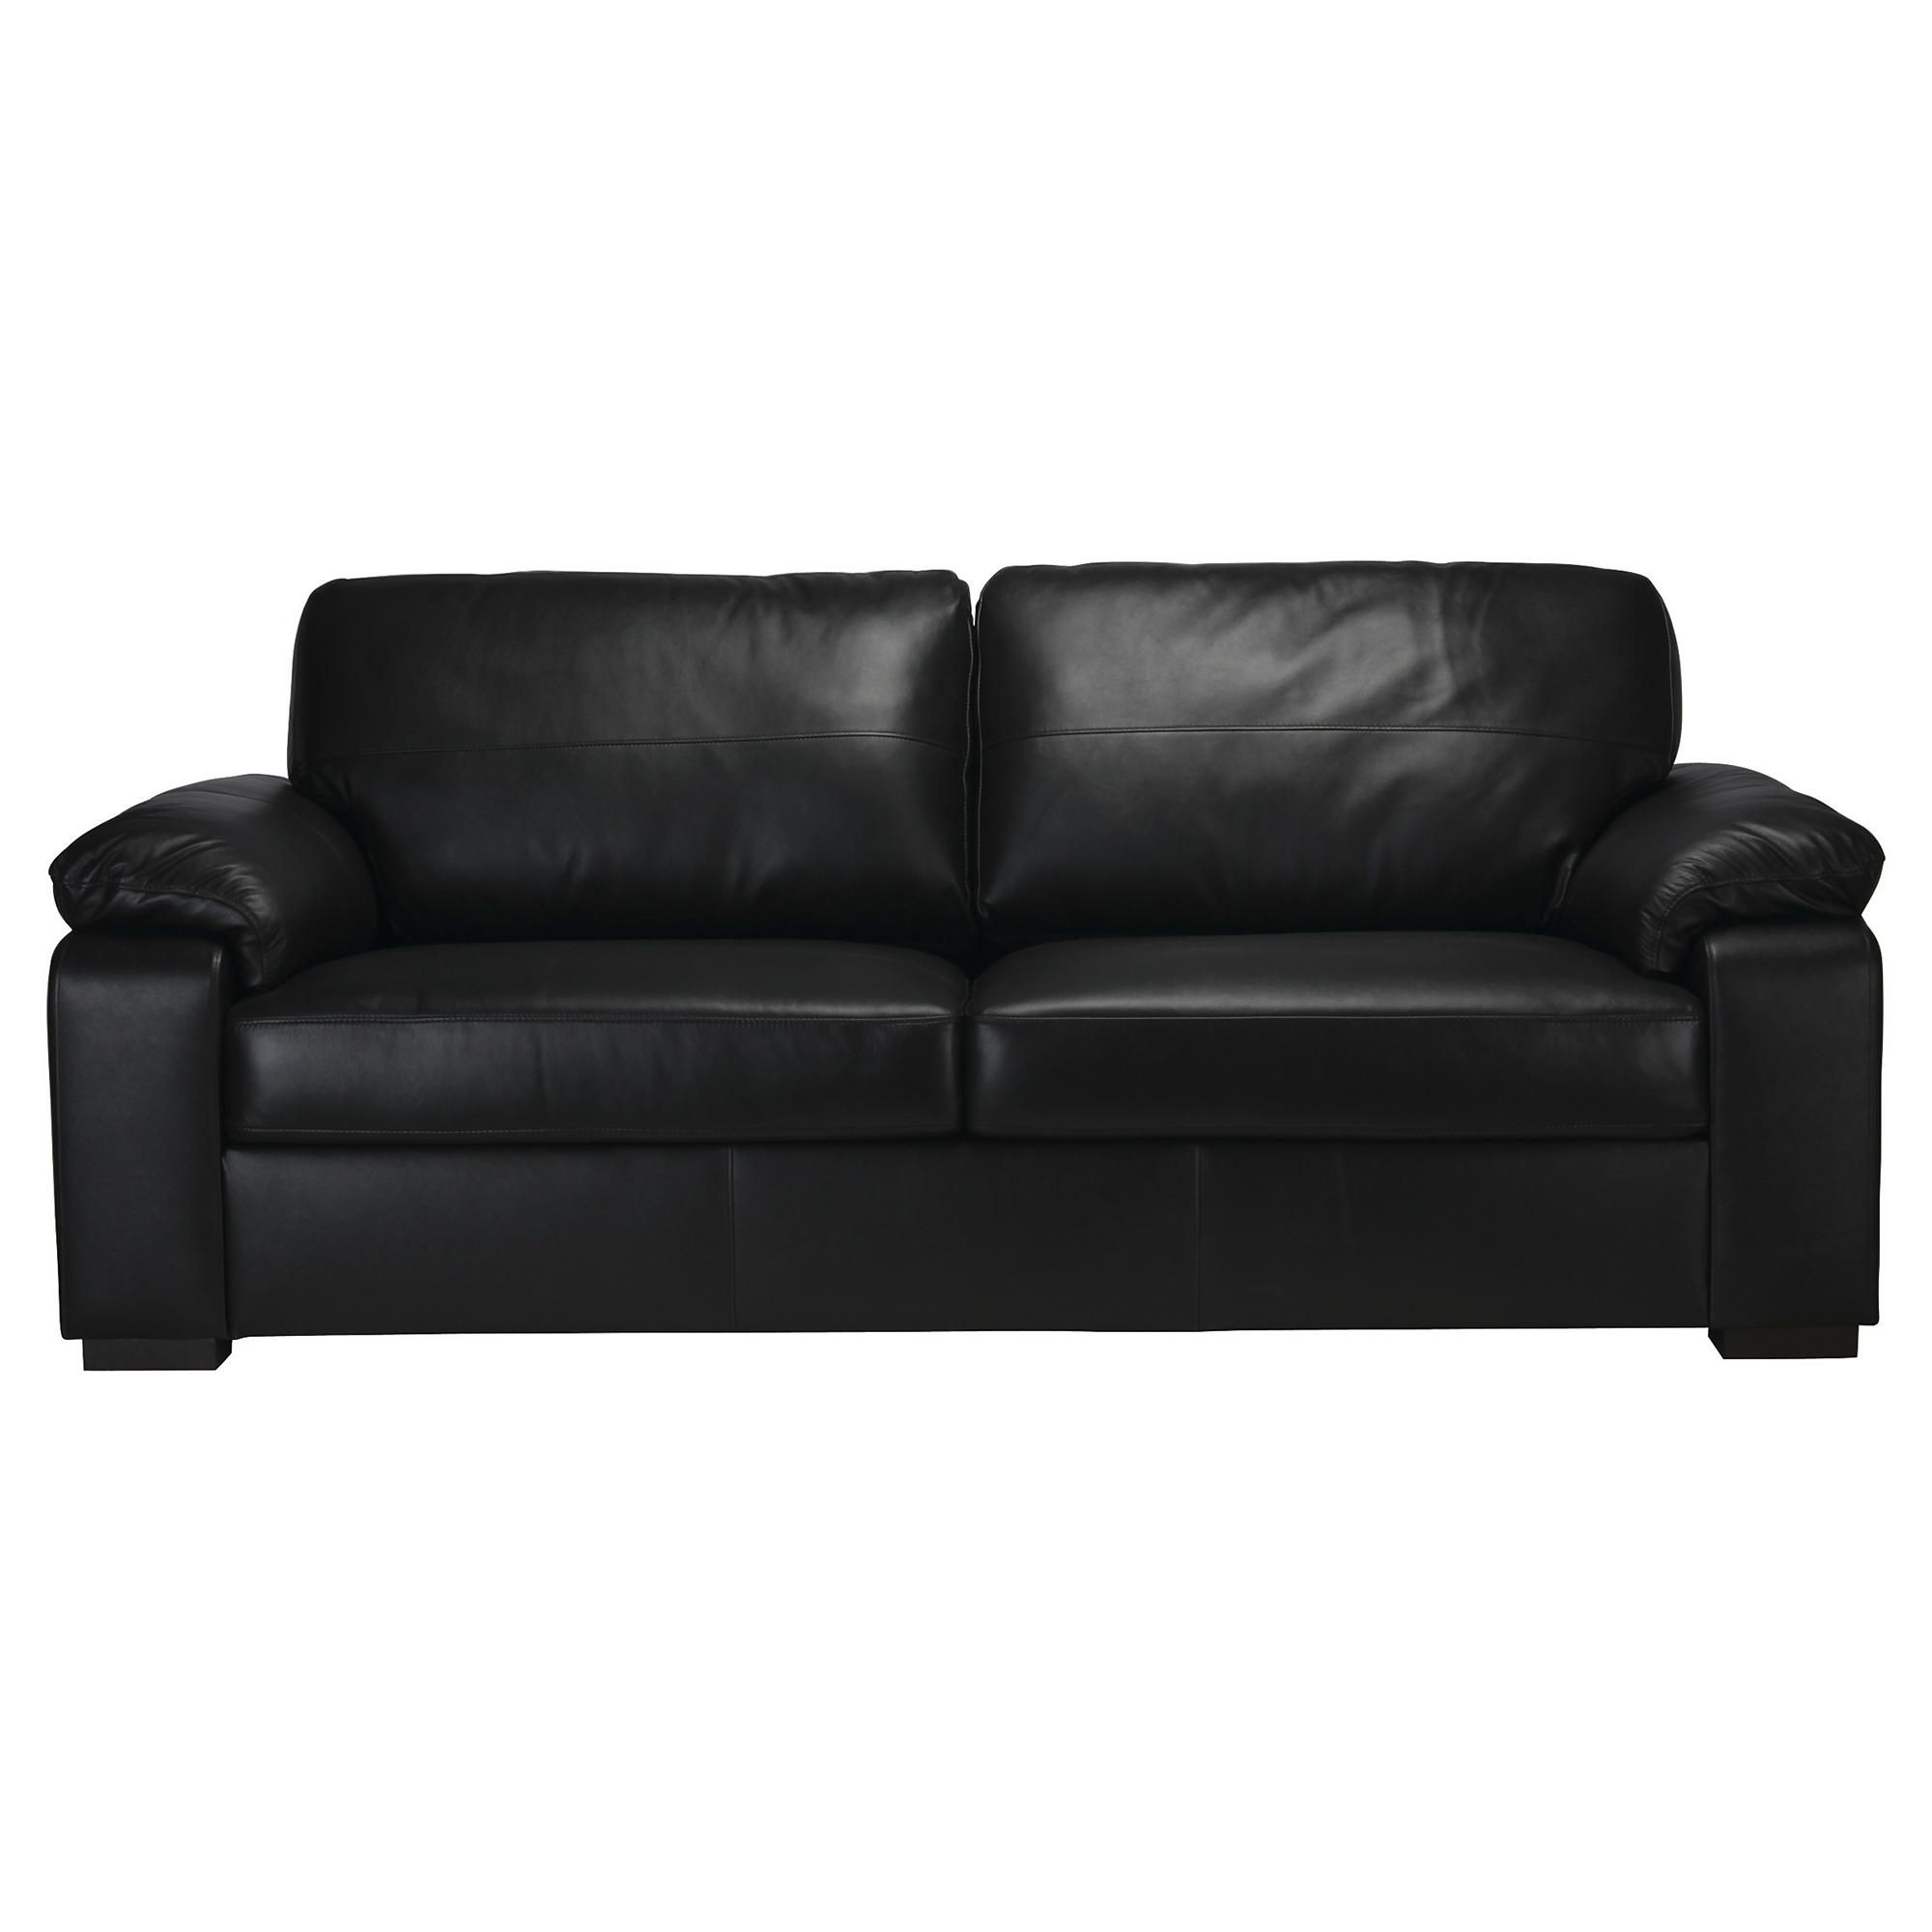 Ashmore Large Leather Sofa, Black at Tesco Direct